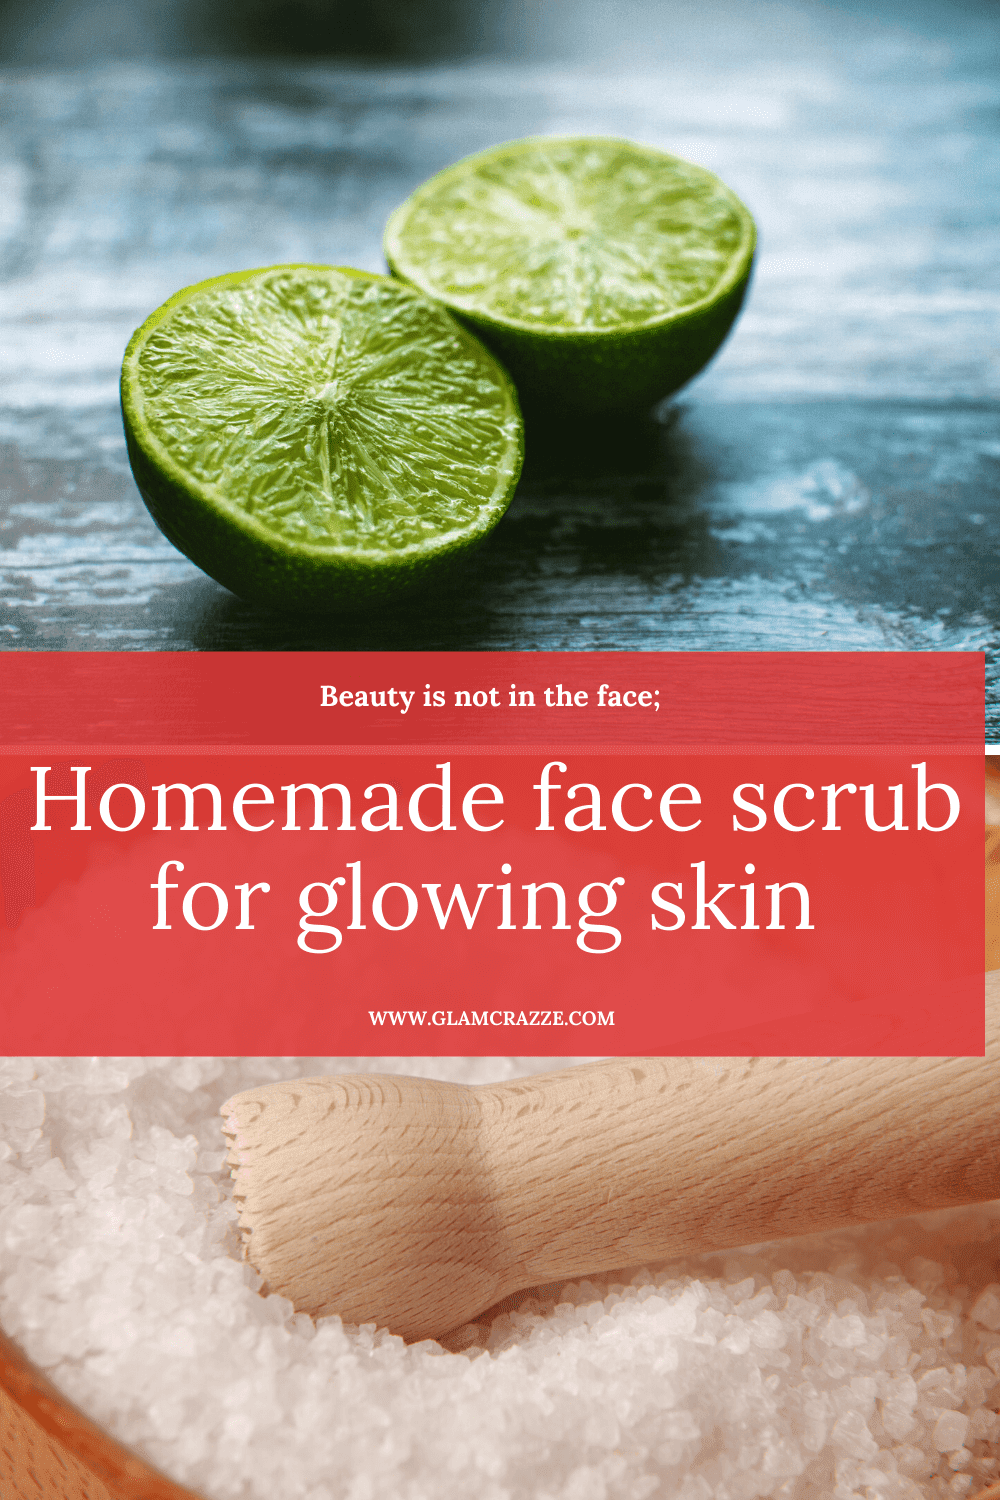 Homemade face scrub for glowing skin using lemon and salt